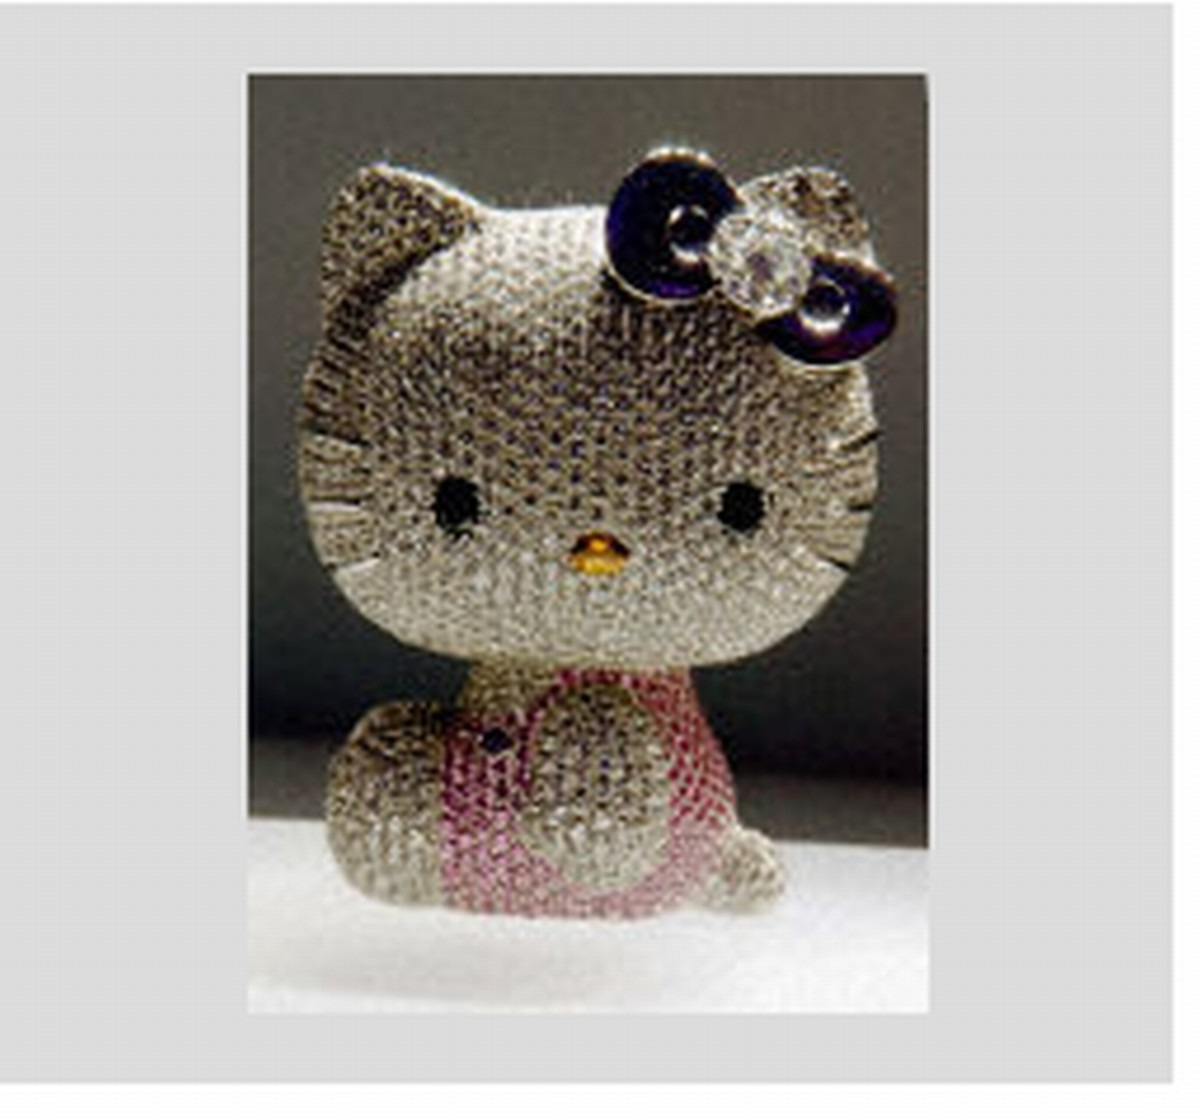 Hello Kitty Mania: Craziest Hello Kitty Stuff You've Ever Seen!